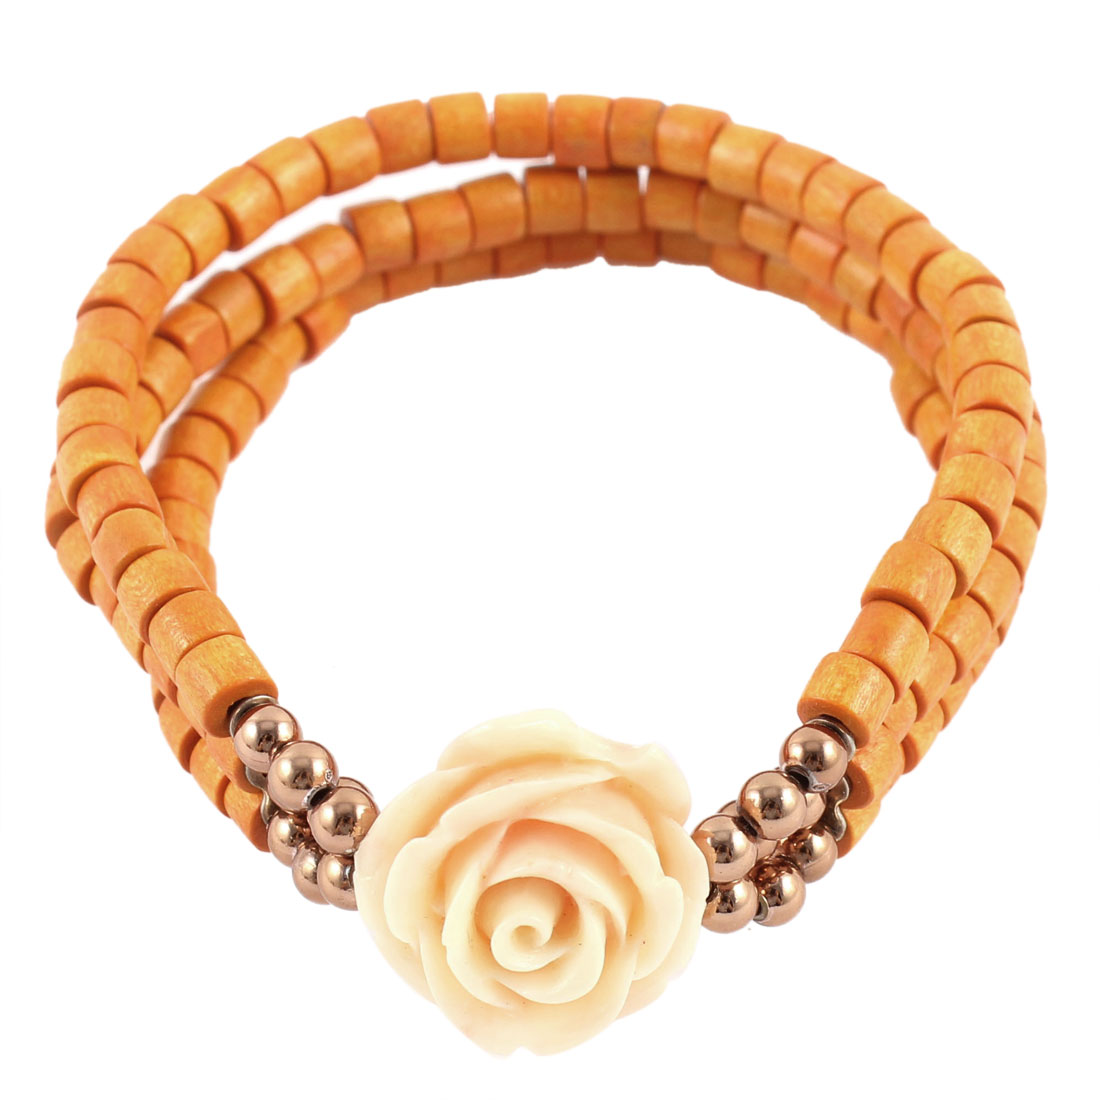 Flower Pendant 3 Layers Elastic Beaded Bracelet Jewelry Orange